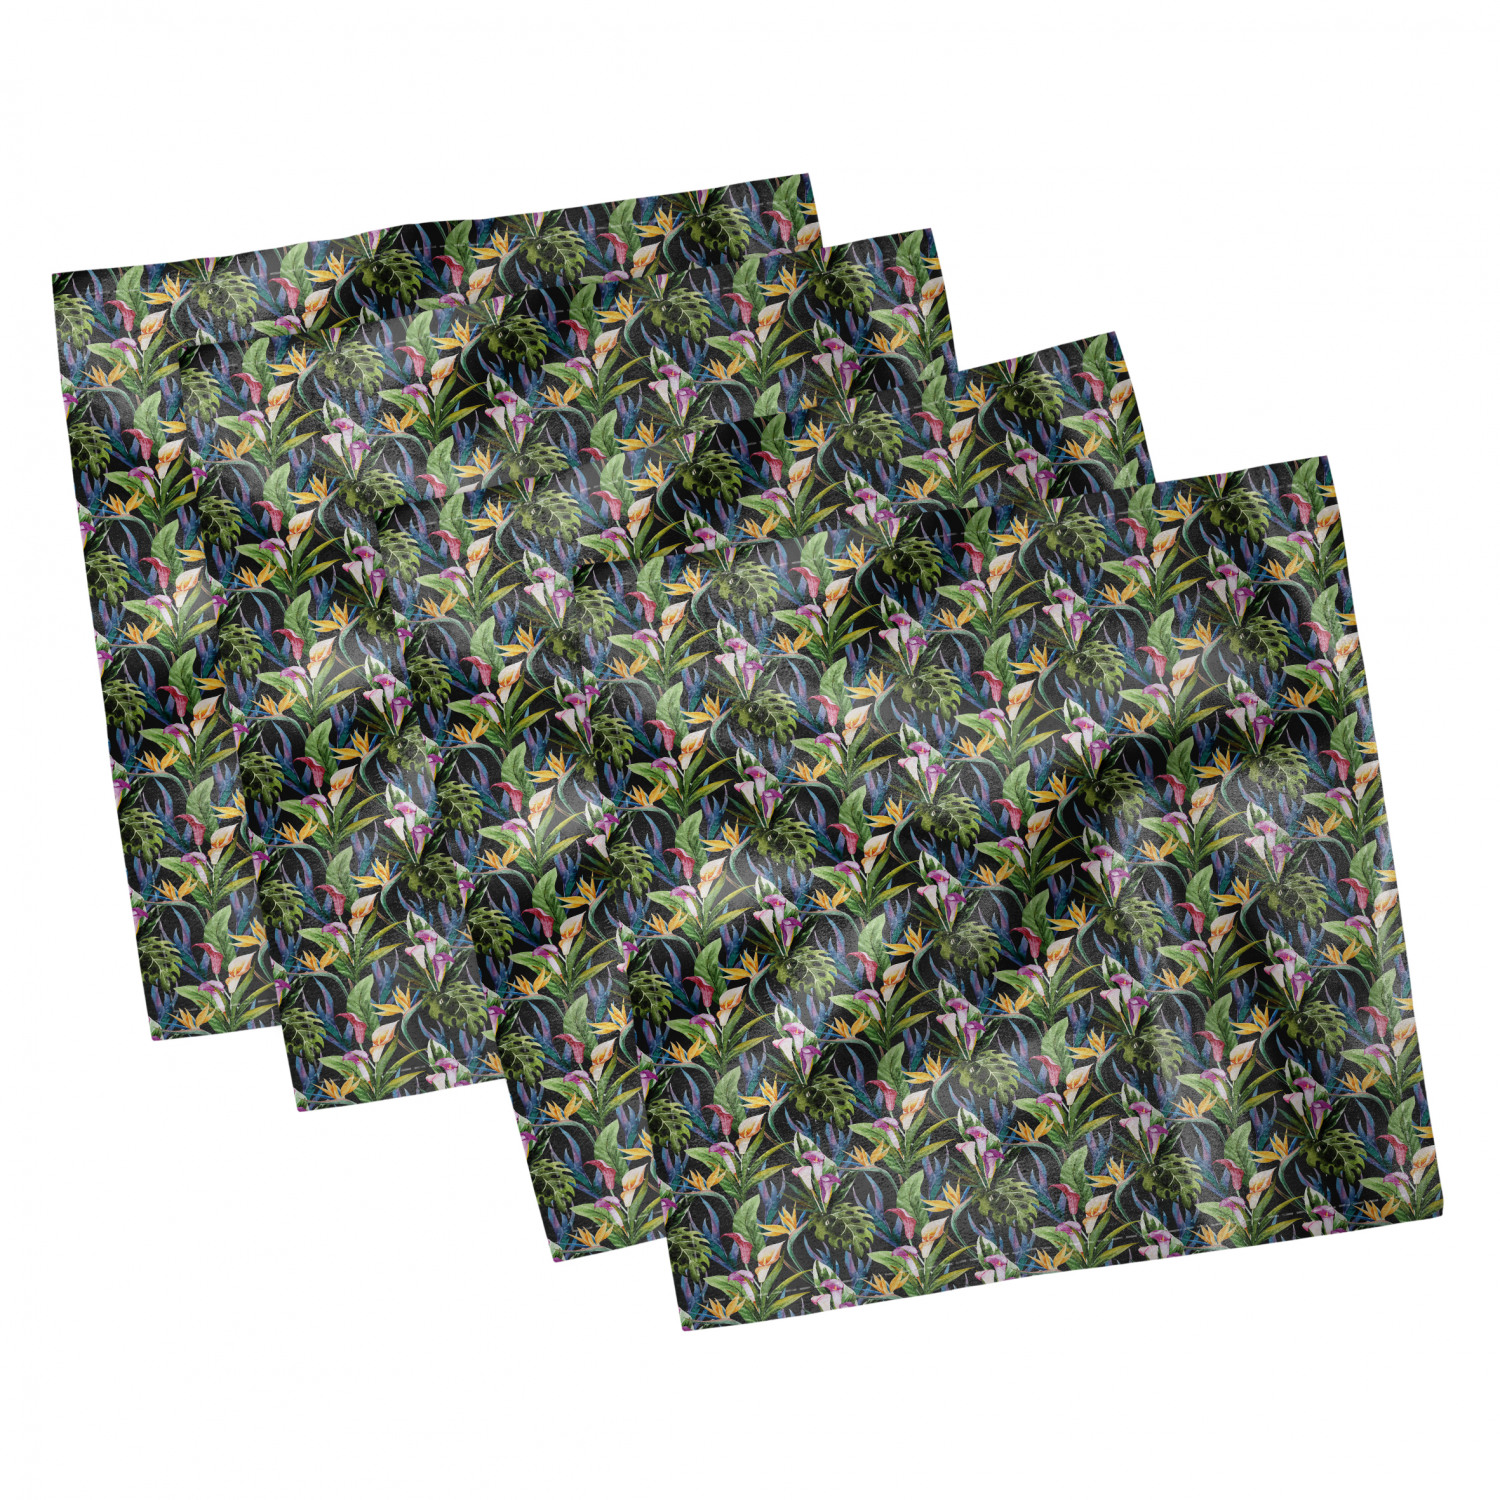 thumbnail 83 - Ambesonne-Leaves-Forest-Decorative-Satin-Napkins-Set-of-4-Party-Dinner-Fabric